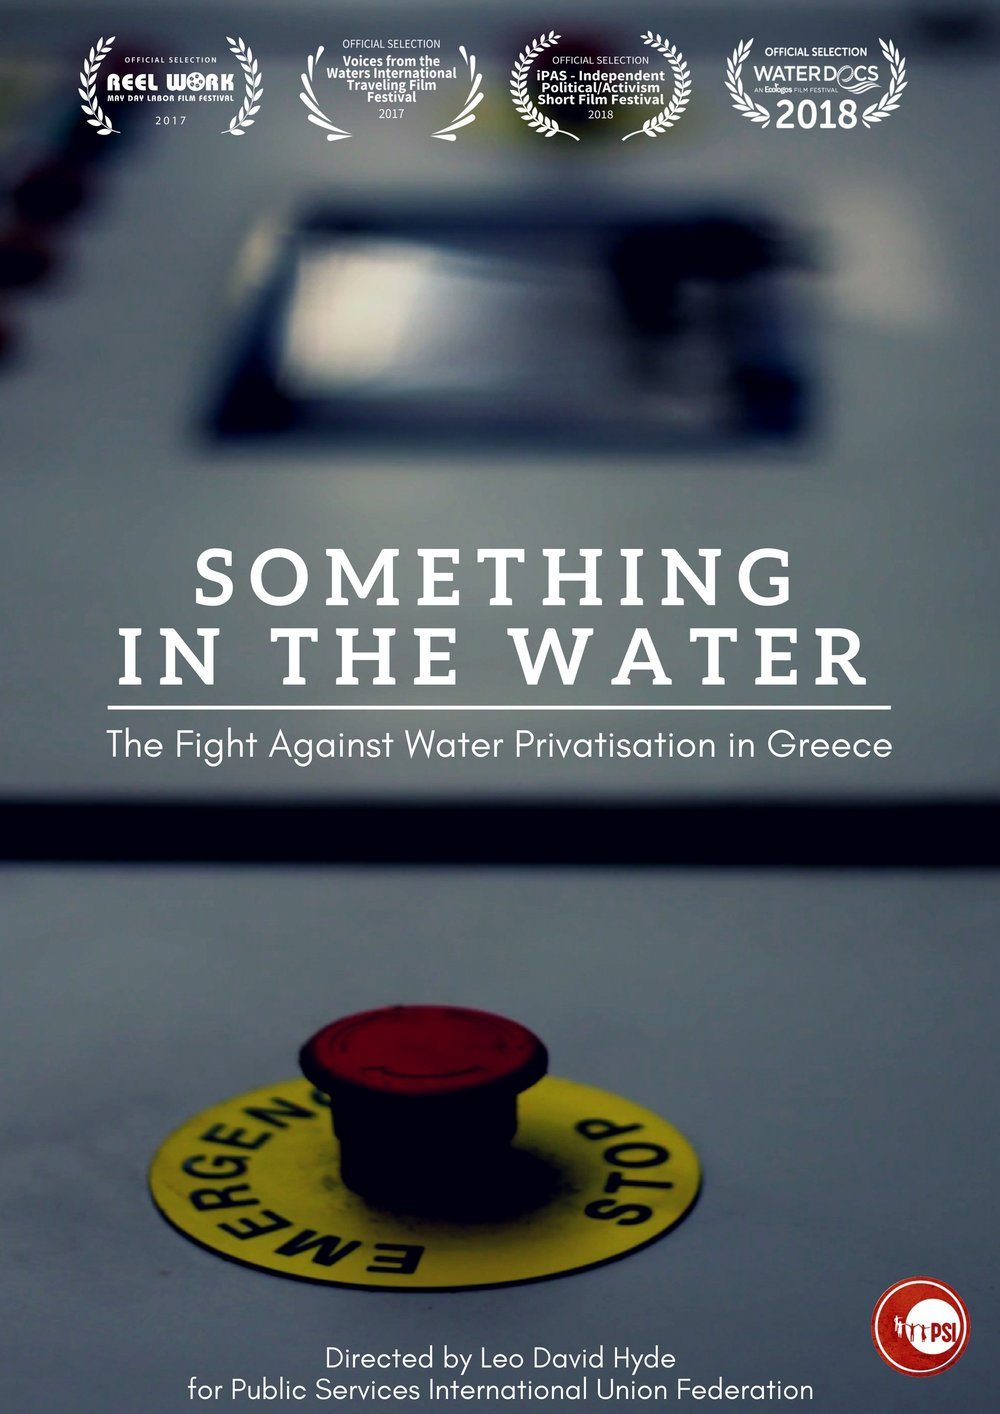 SOMETHING IN THE WATER Poster with WD laurels.jpg